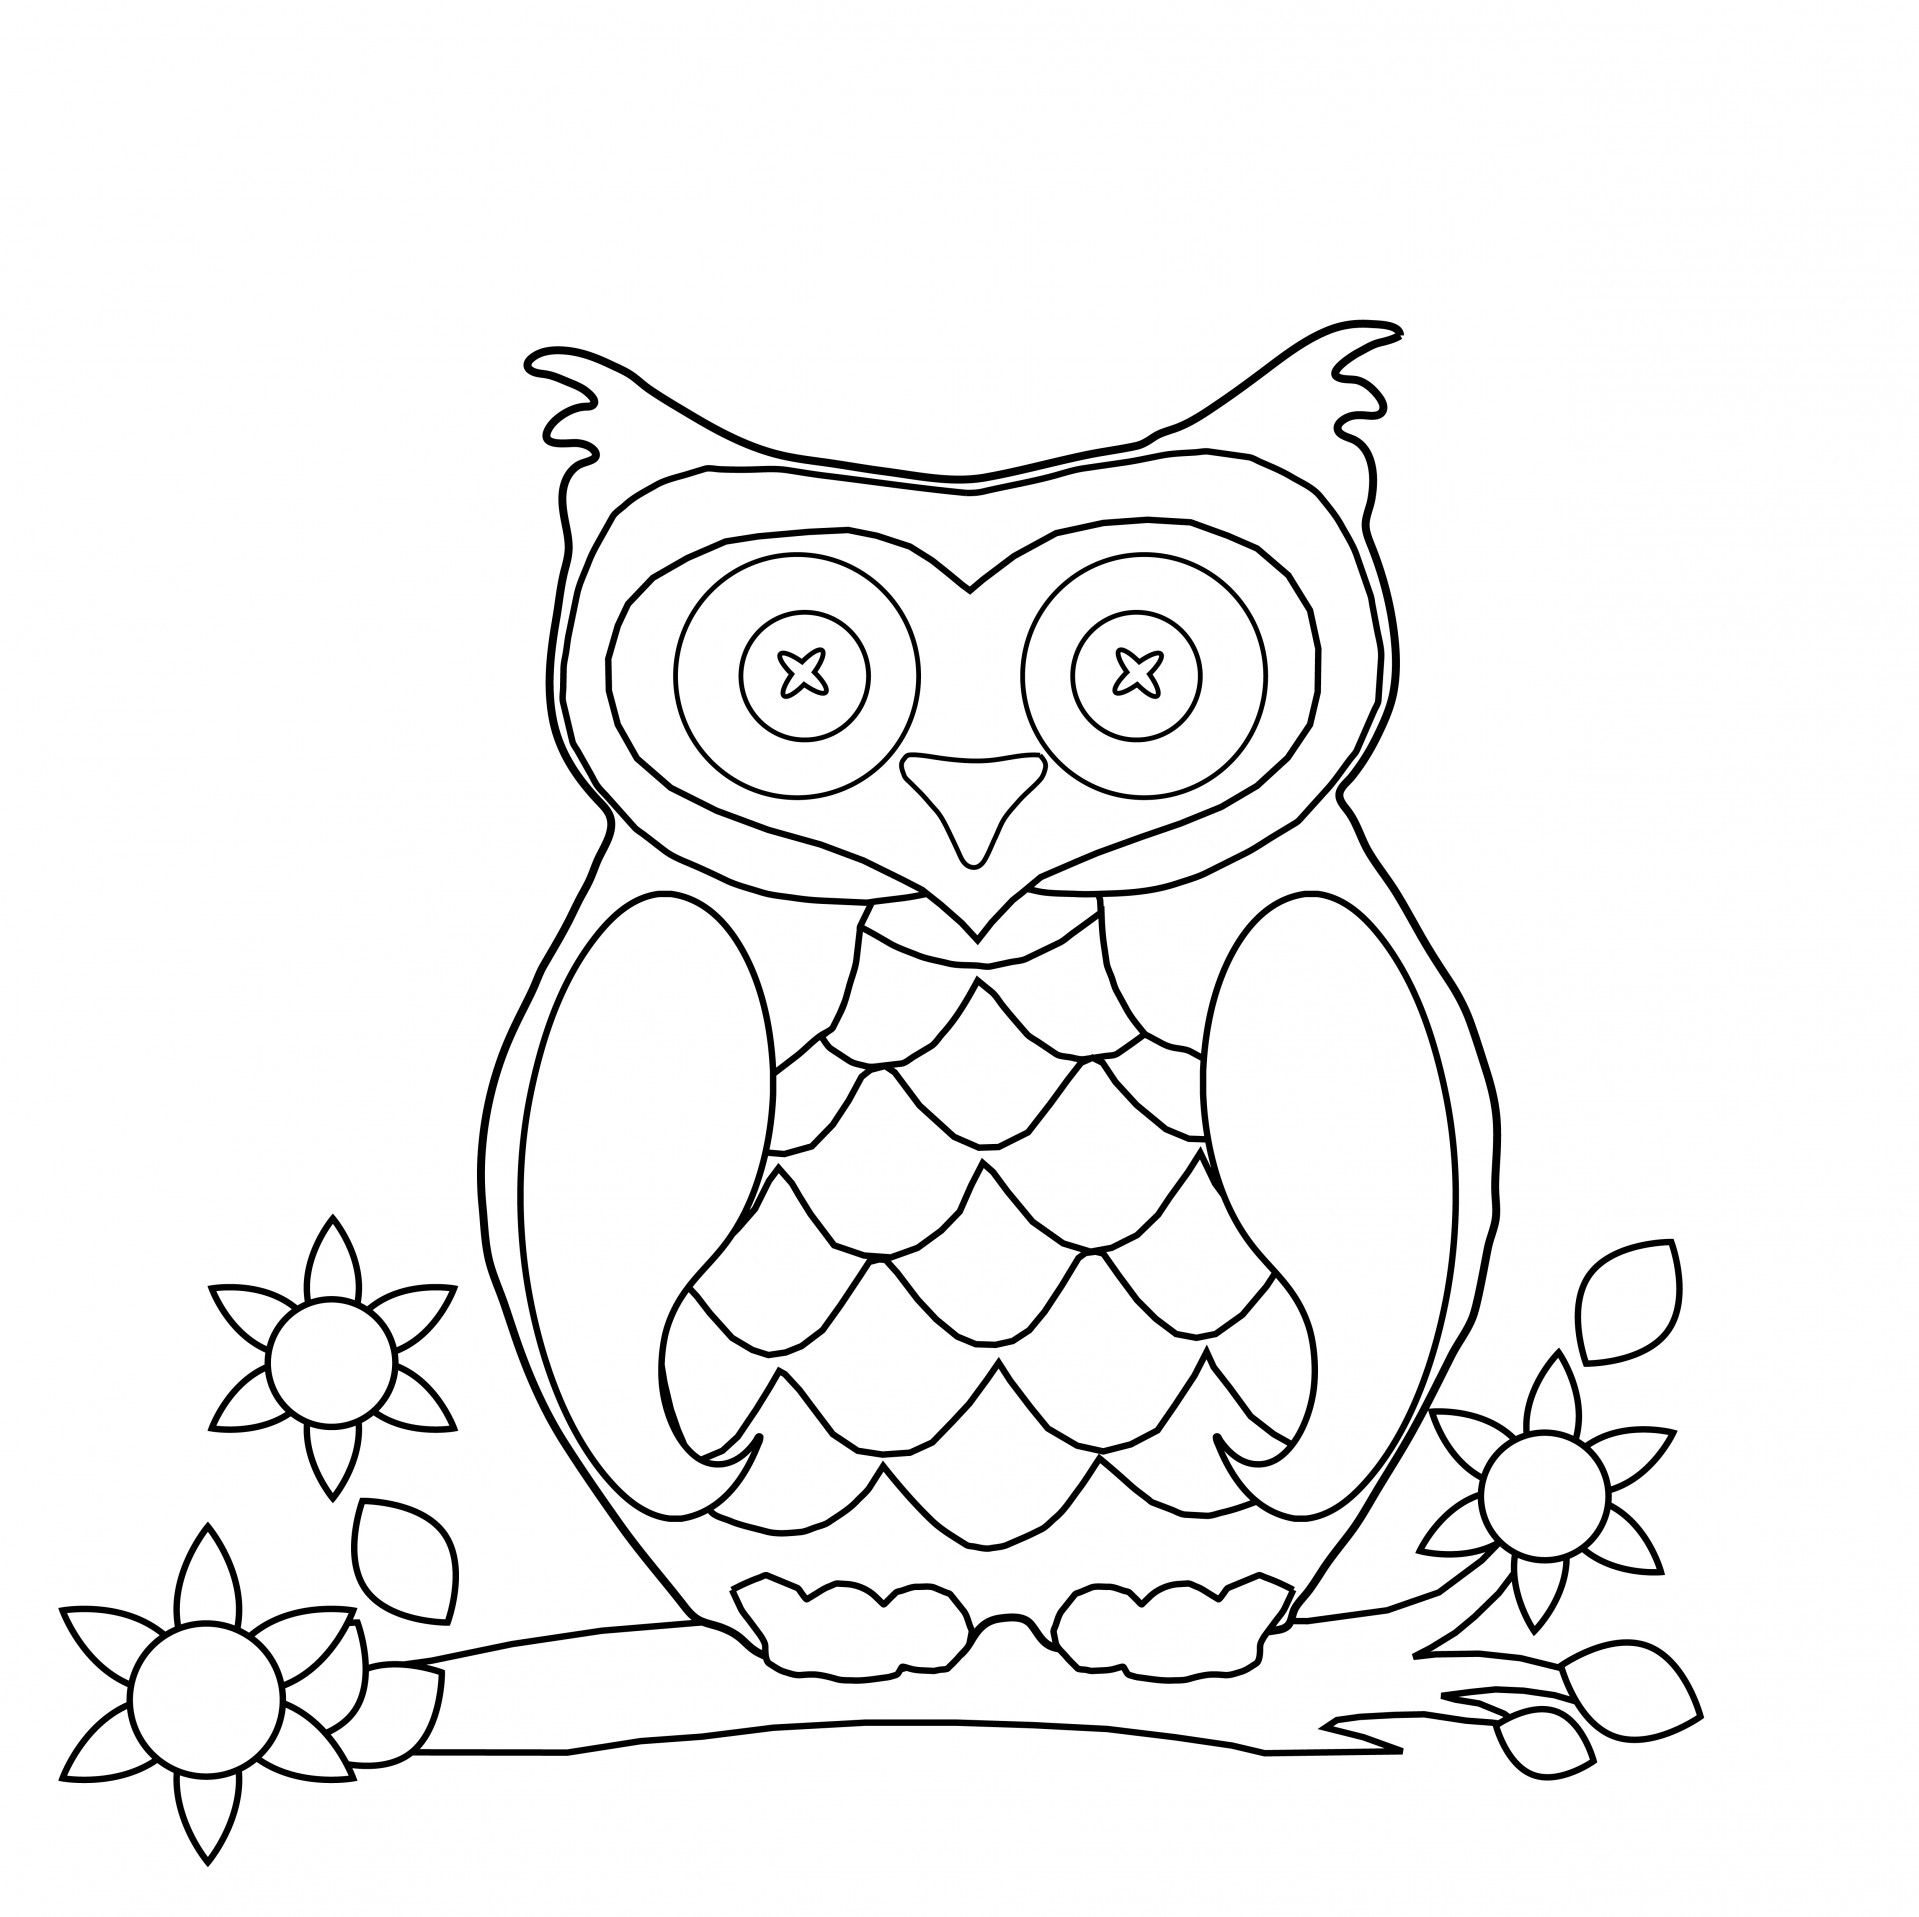 coloring images owl coloring pages for adults free detailed owl coloring images coloring